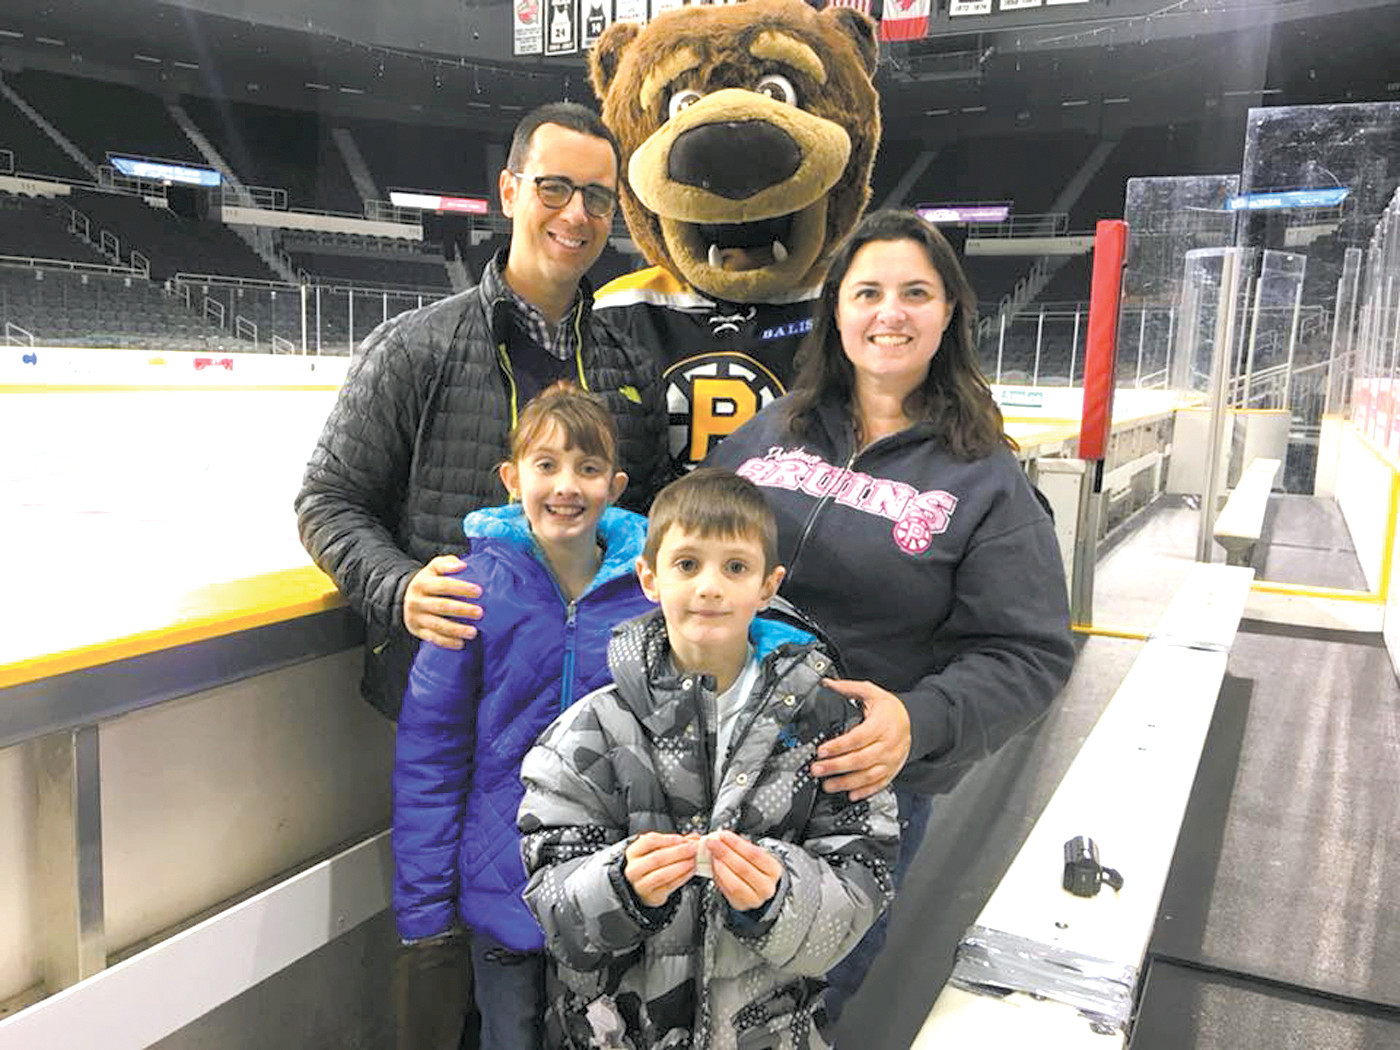 THE 'FUN' IN FUNDRAISING: Rich Pezzillo, executive director of the New England Hemophilia Association and Samboni, the P-Bruins mascot, with Madeline Murray, T.J. Murray and their mother Meagan Murray prior to the game which raises funds for the Tomorrow Fund at Hasbro Hospital.